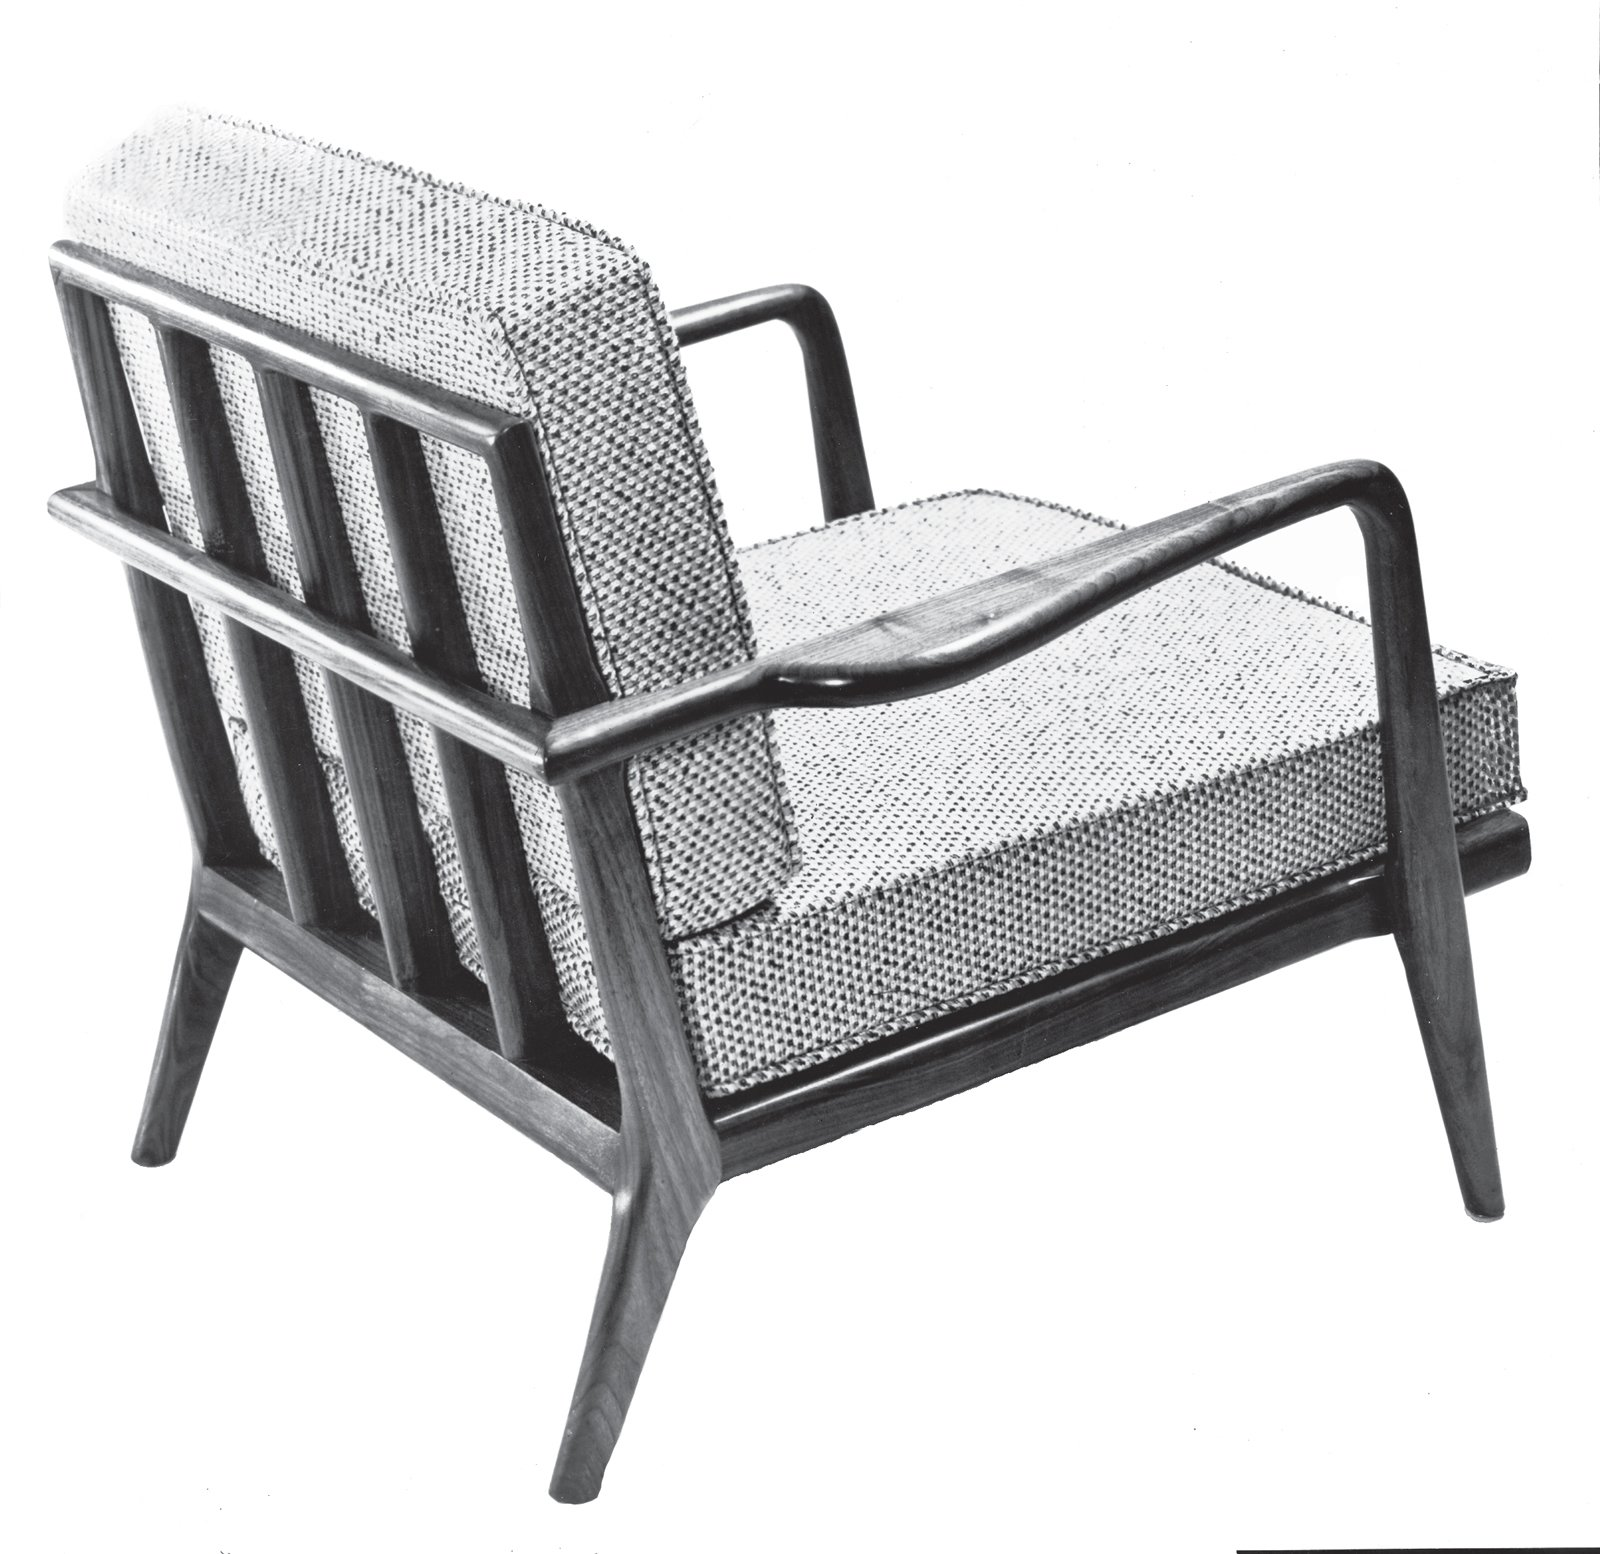 The WAC-33 Rail Back lounge chair featured removable cushion covers to enhance longevity. Reupholstering is expensive, so Smilow- Thielle designed covers to allow consumers to easily refresh the piece. Photo courtesy of the Smilow Family.  Photo 5 of 7 in Mid-Century Designer Focus: Mel Smilow